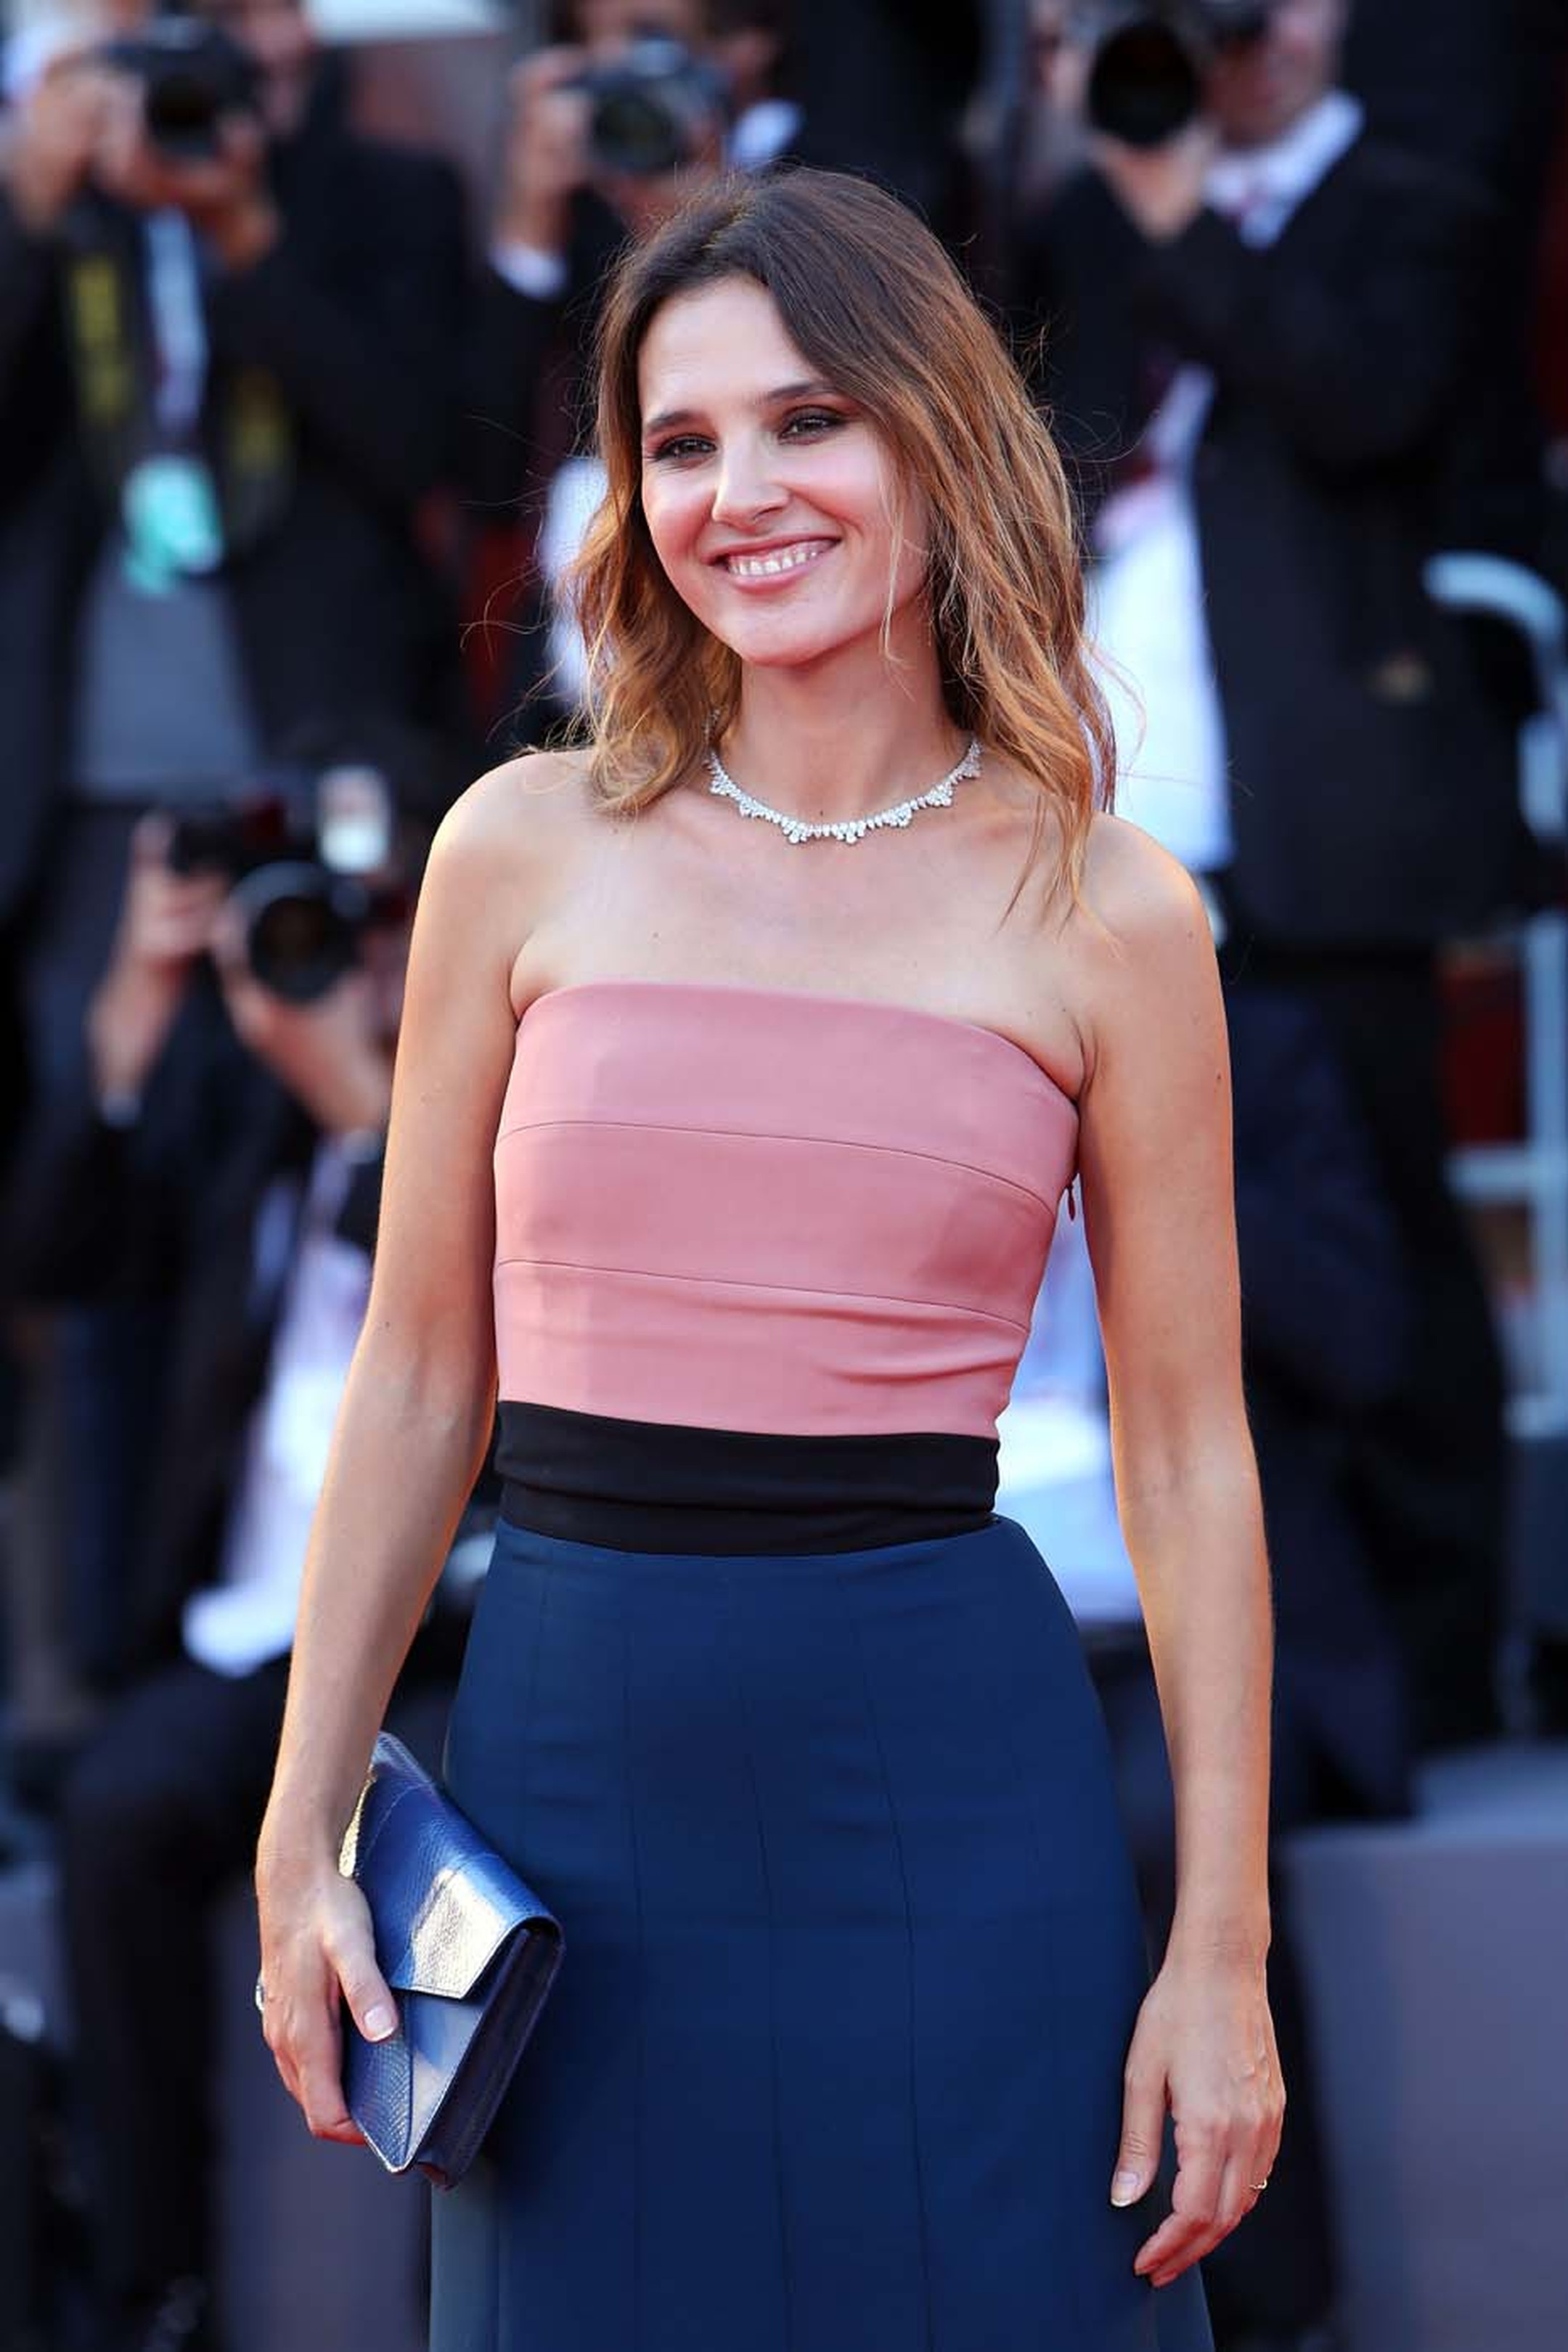 Actress Virginie Ledoyen debuted a stunning diamond Chopard necklace from the Green Carpet collection at the Venice Film Festival 2013